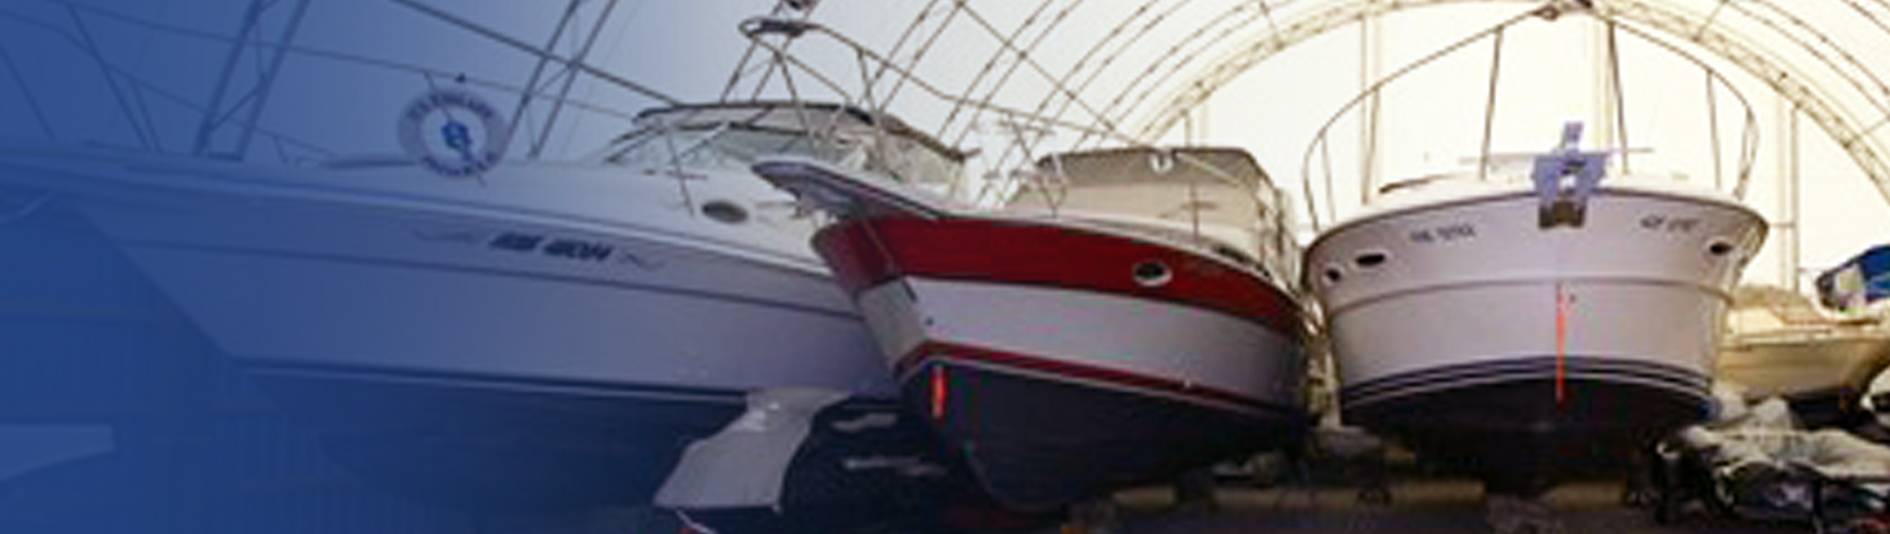 boat storage banner_with transparency